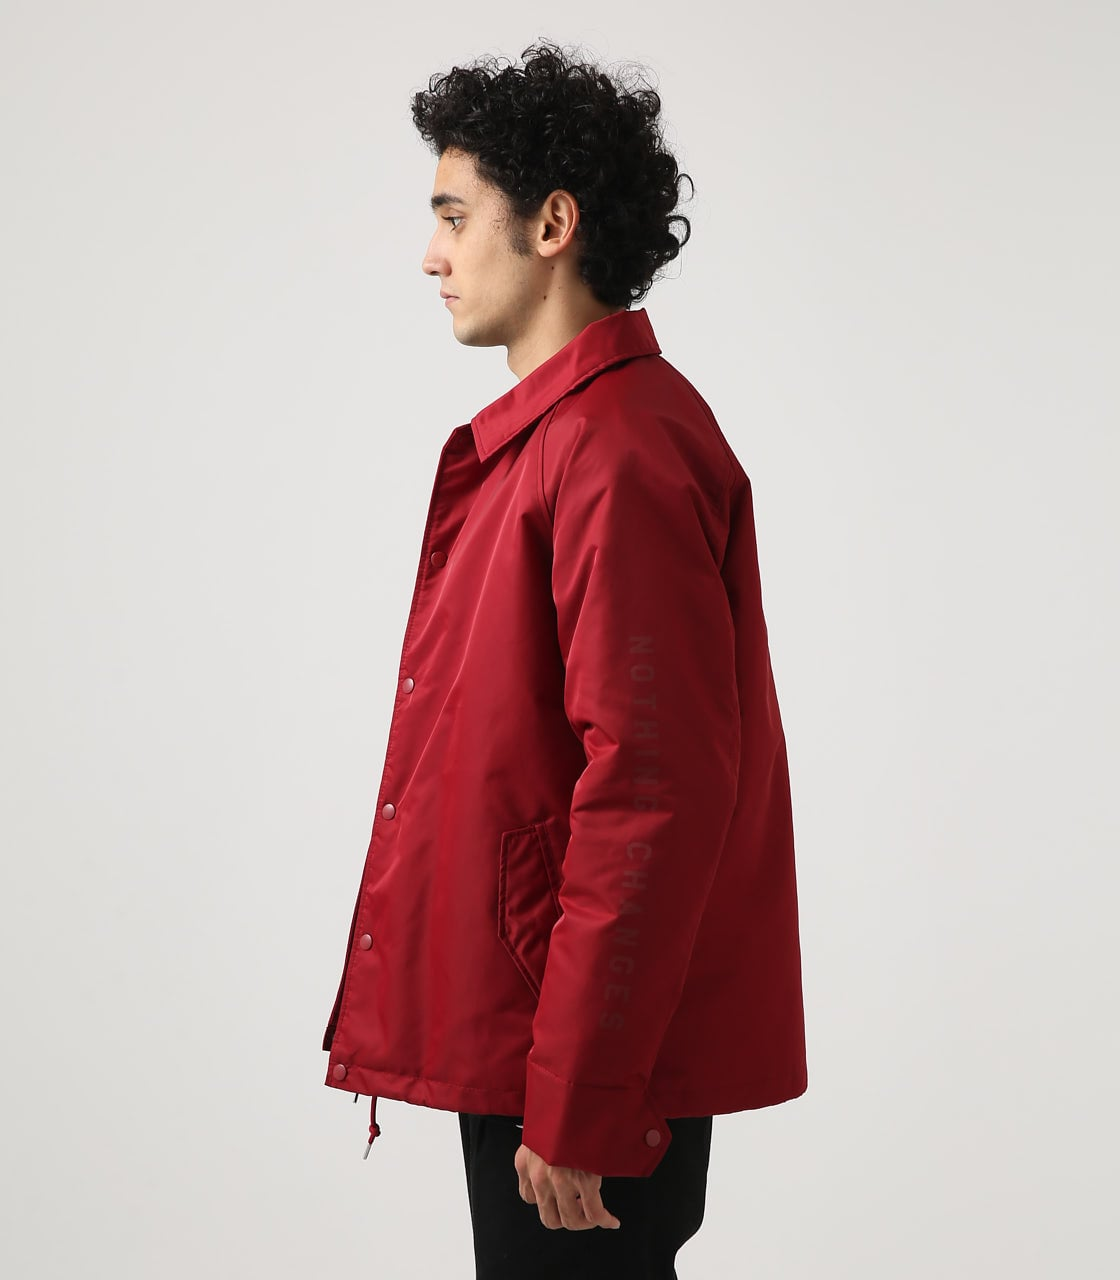 【AZUL BY MOUSSY】ヘビーツイルボアコーチジャケット 詳細画像 RED 6